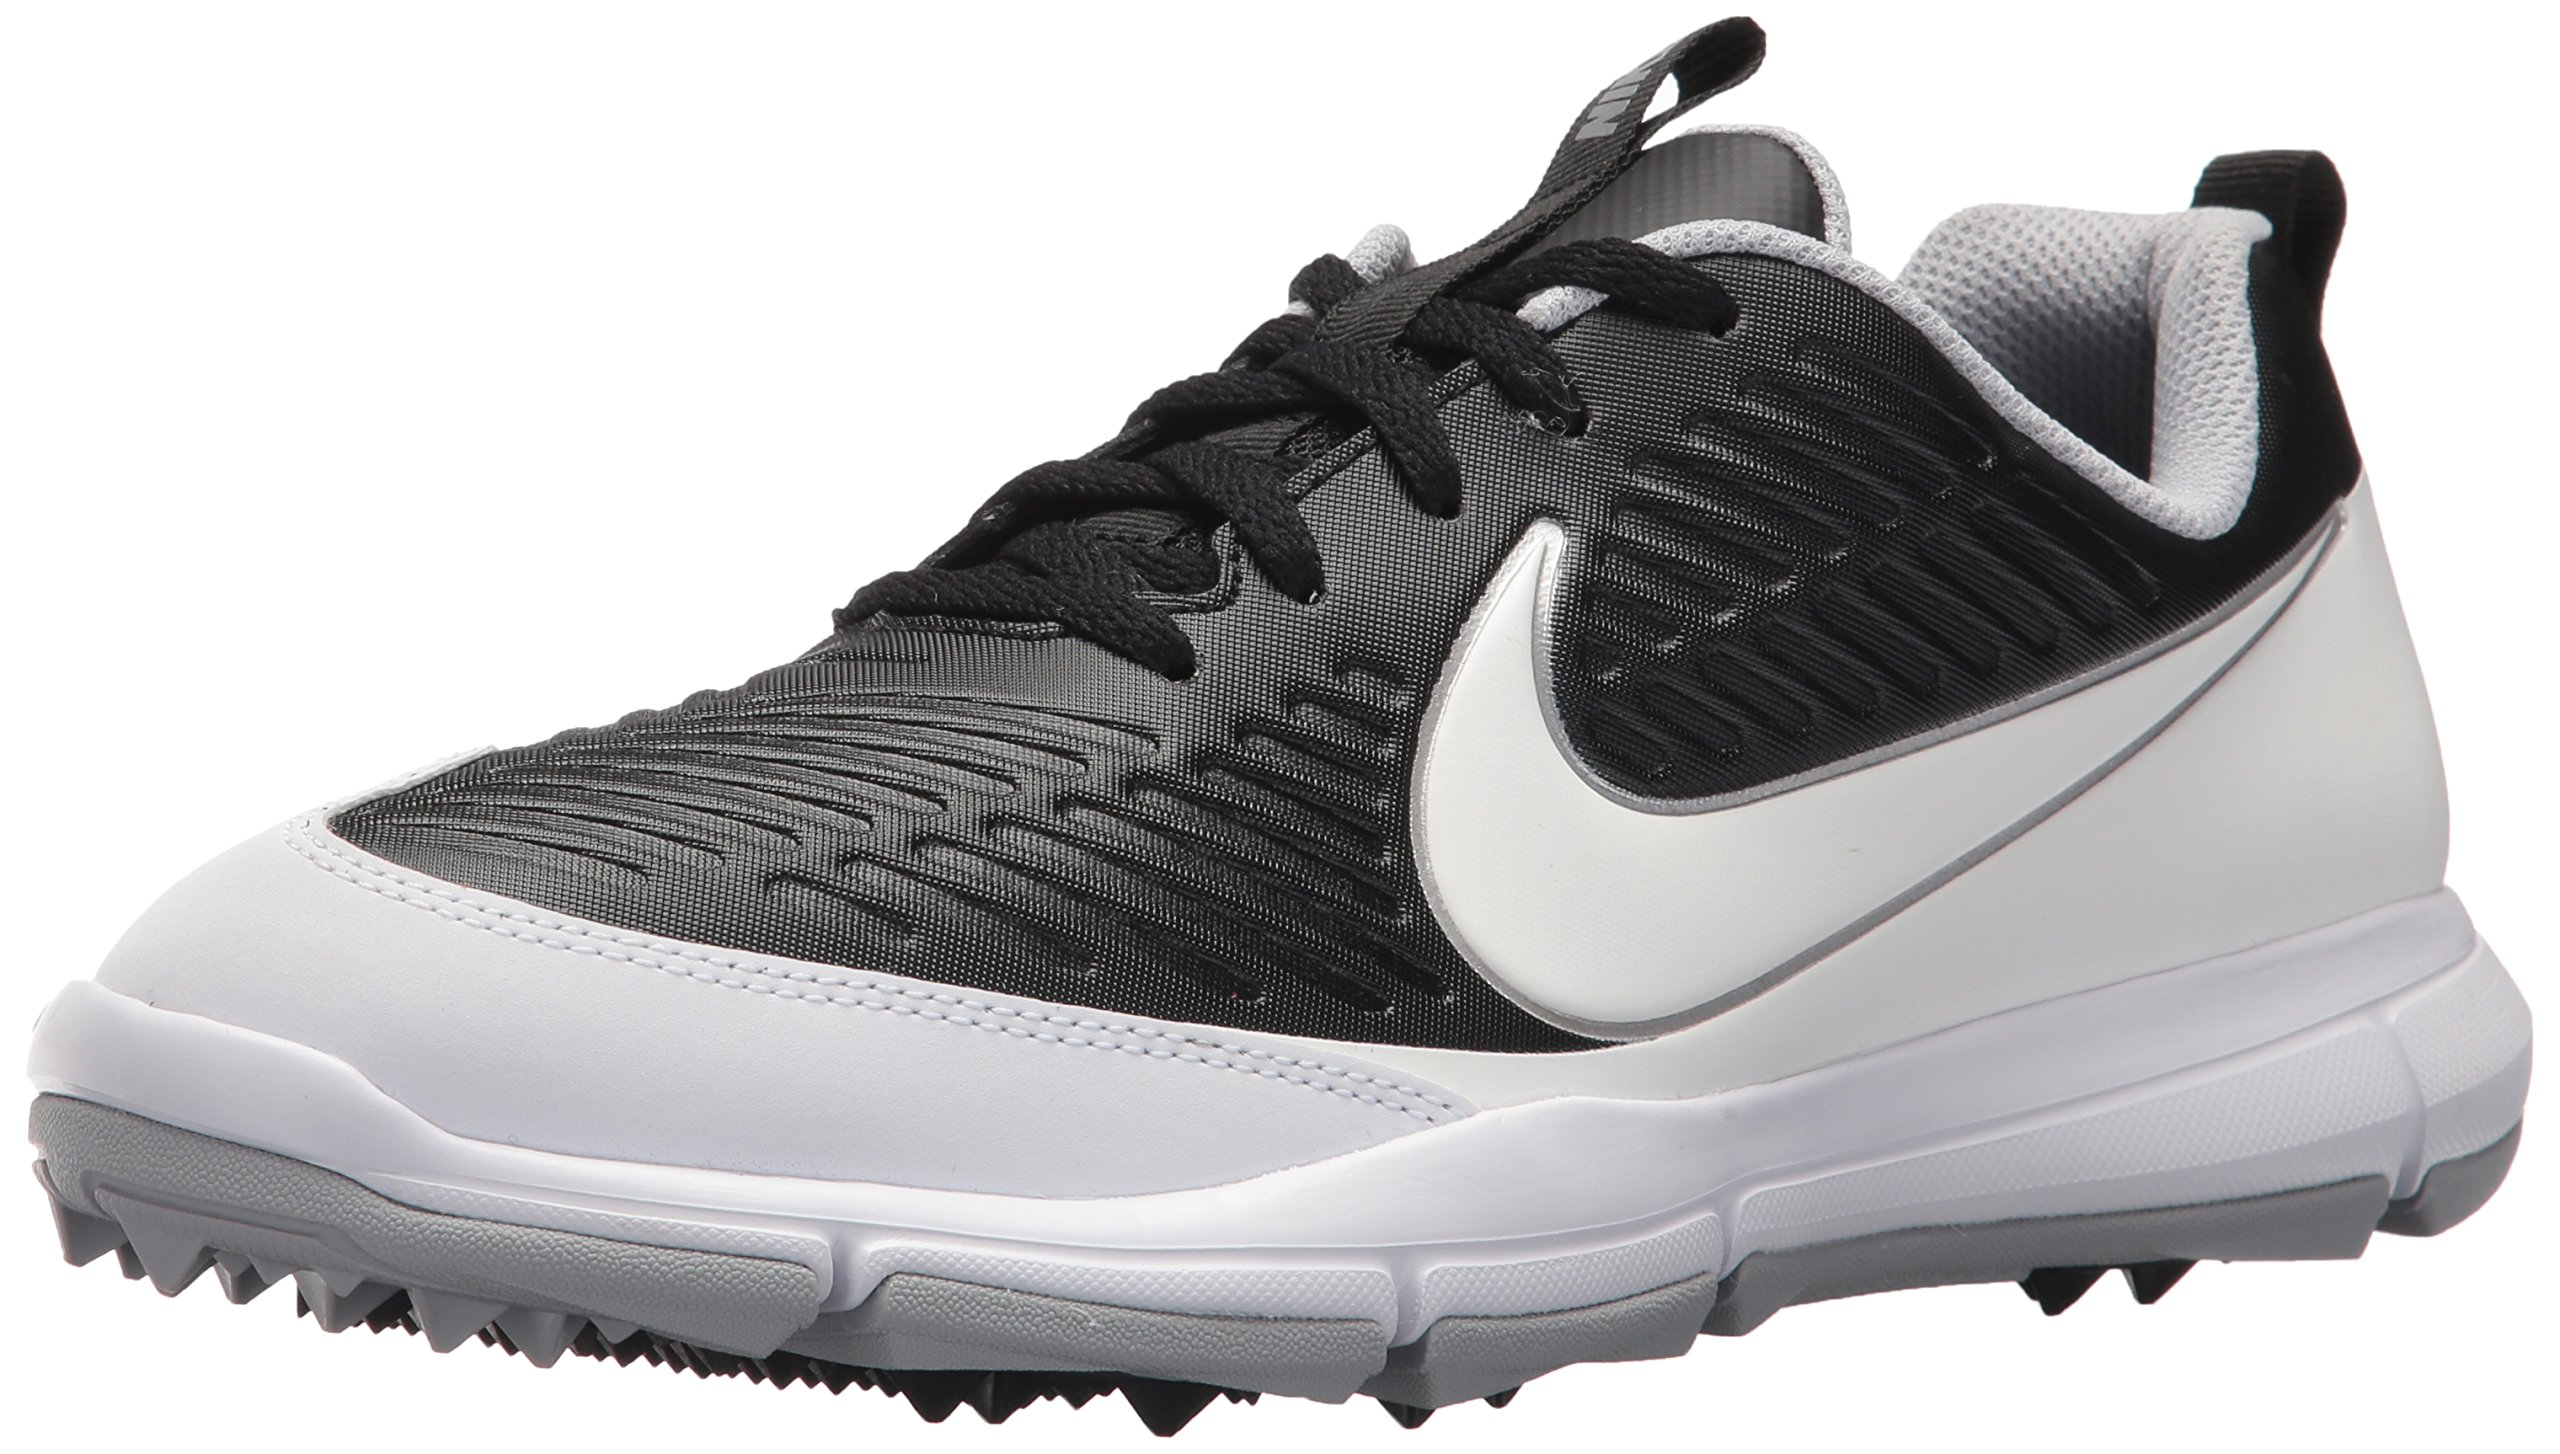 NIKE Men's Explorer 2 Golf Shoe, Black/White/Metallic Silver/Wolf Grey, 7.5 Wide US